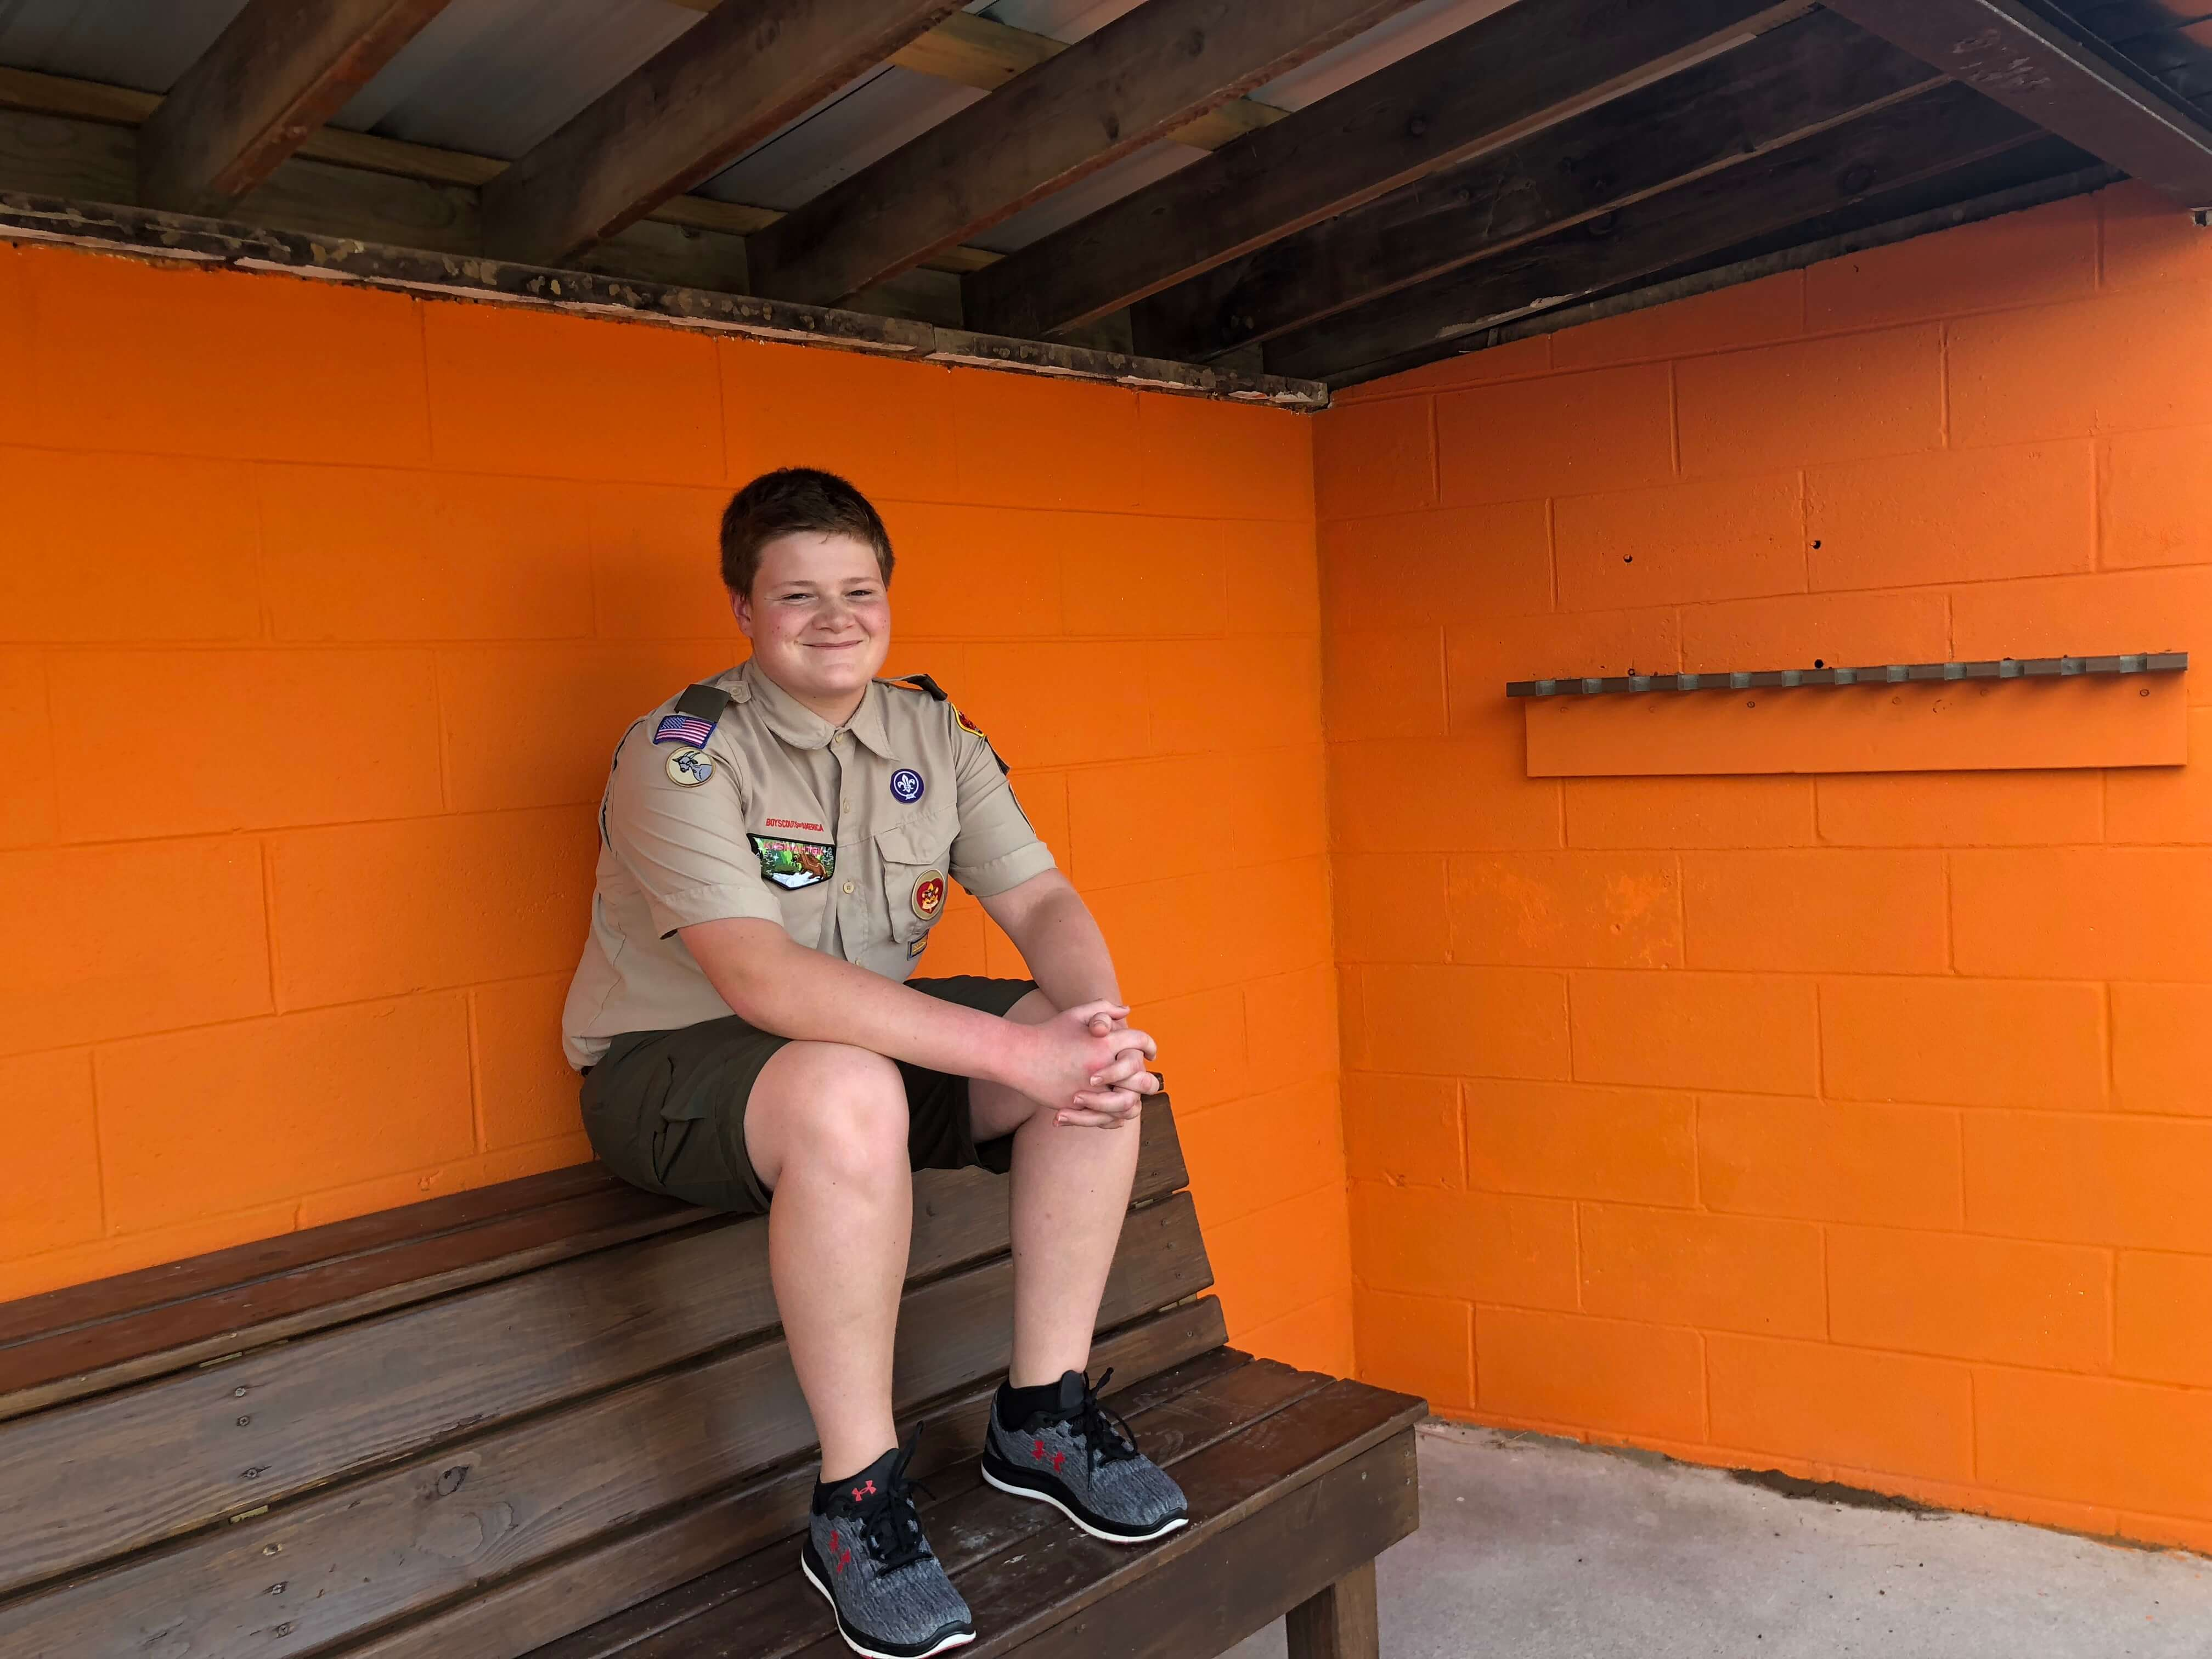 Eagle Scout Ryan Gigax